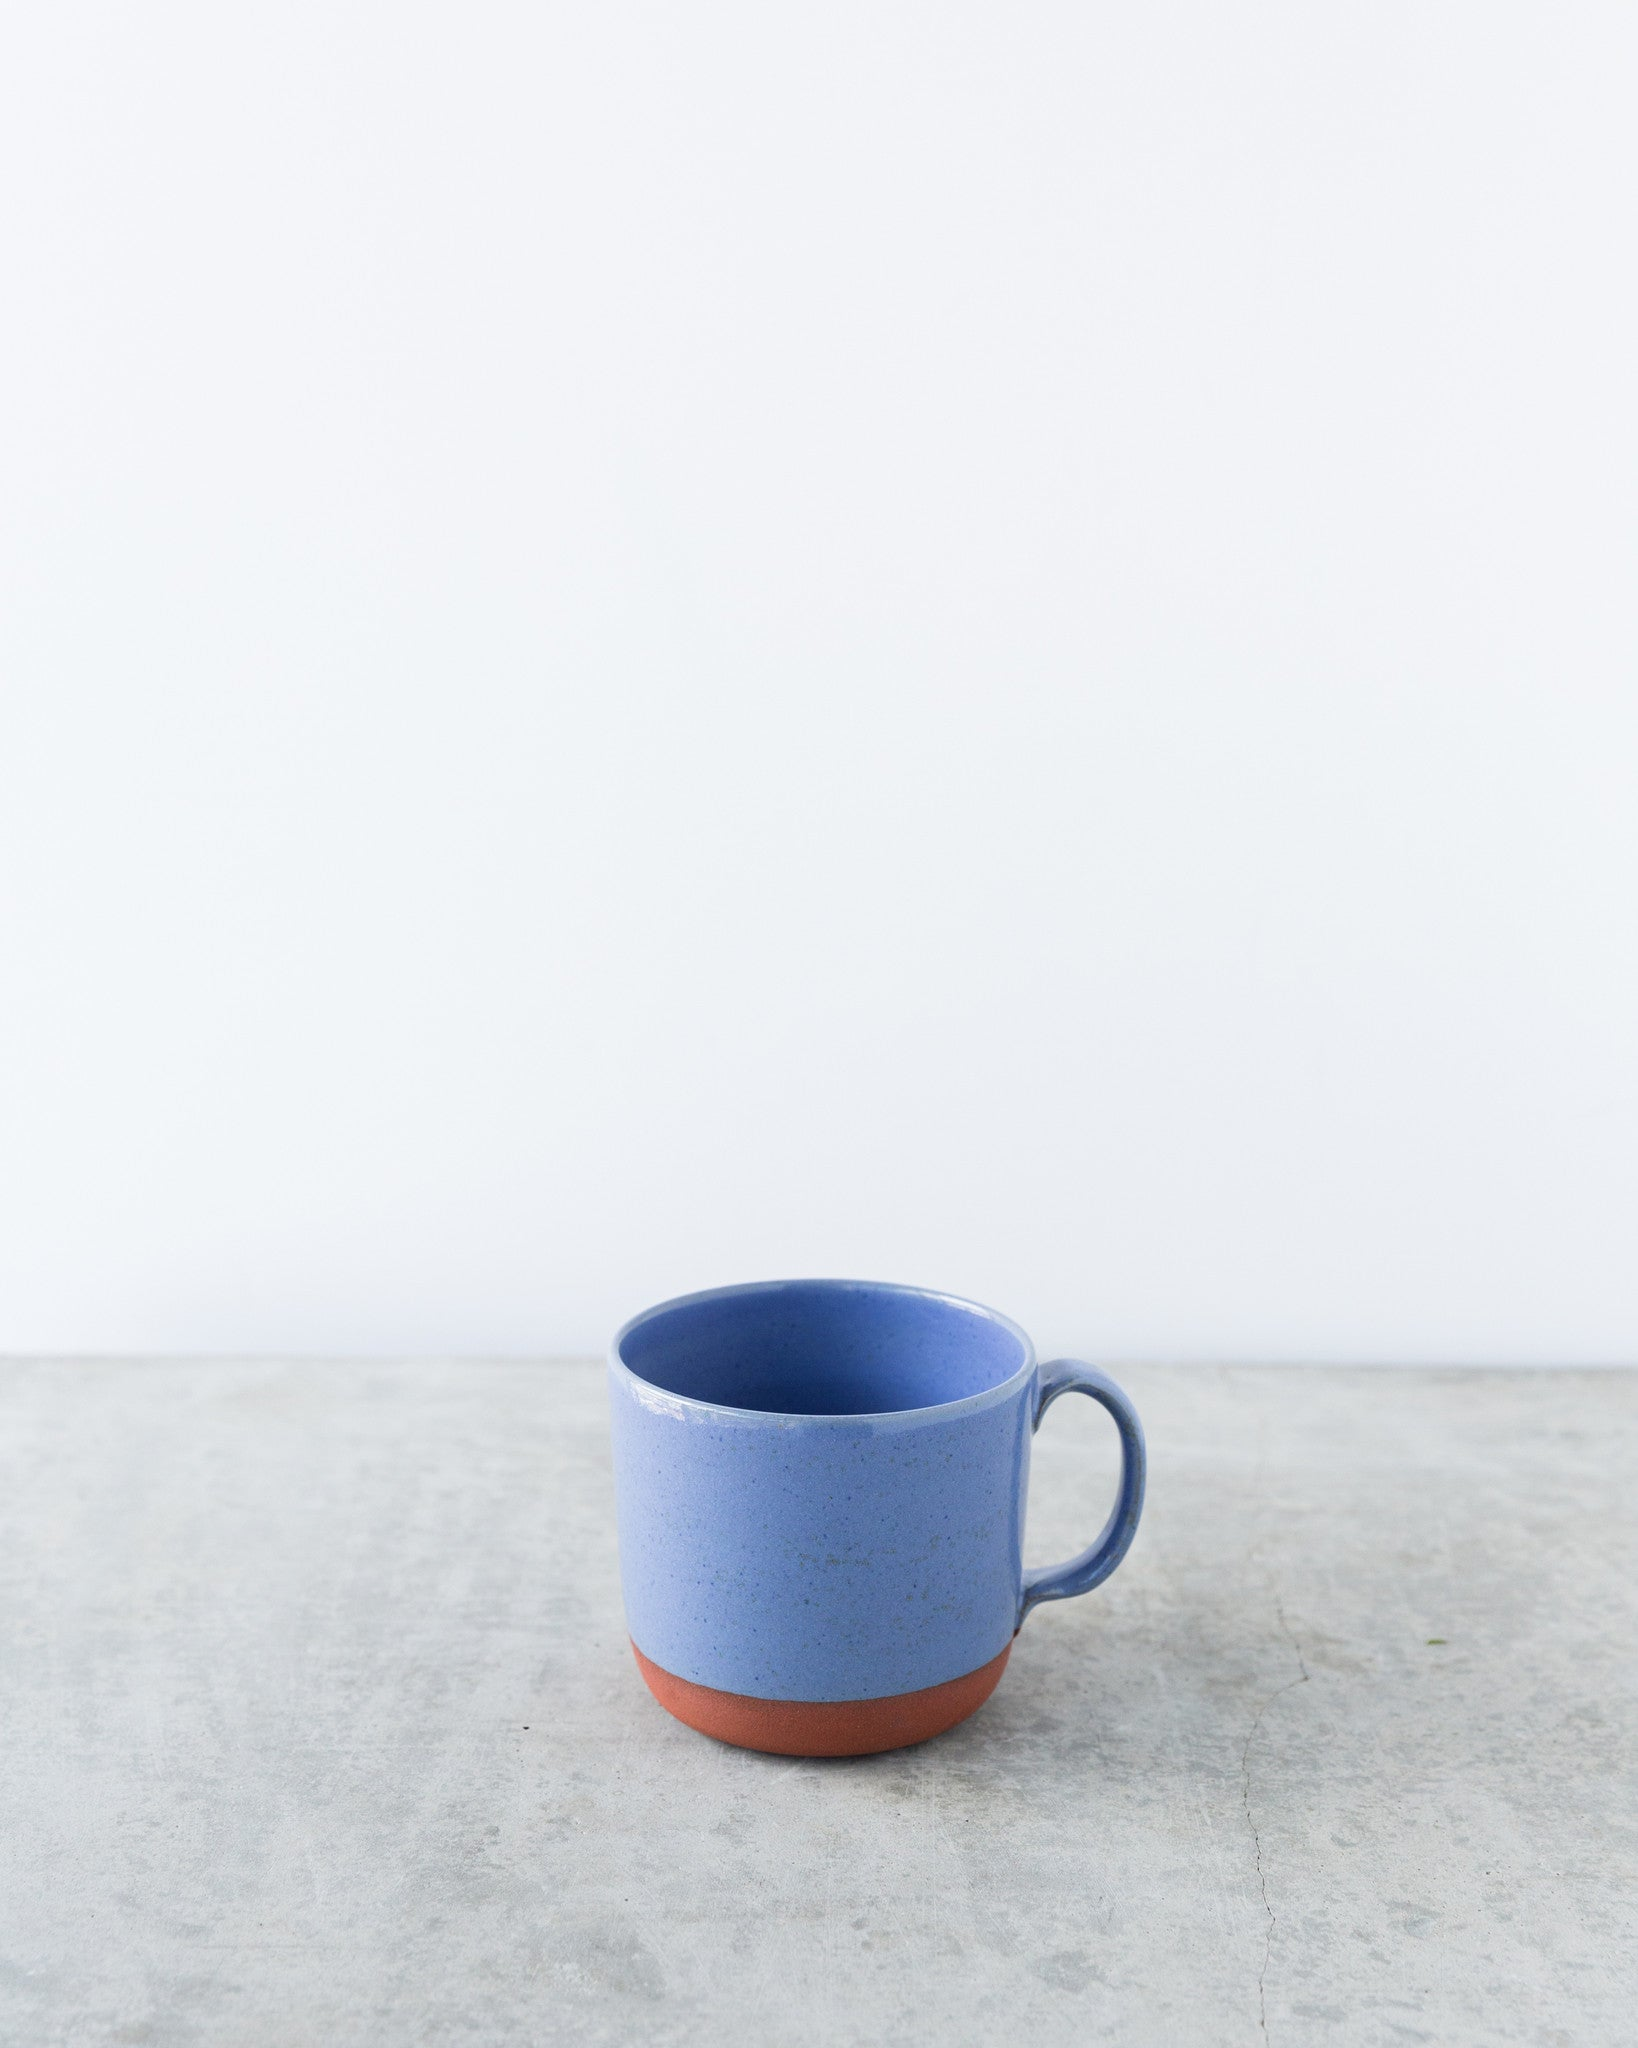 Kalika Bowlby Nest Collection Mug in Periwinkle Blue